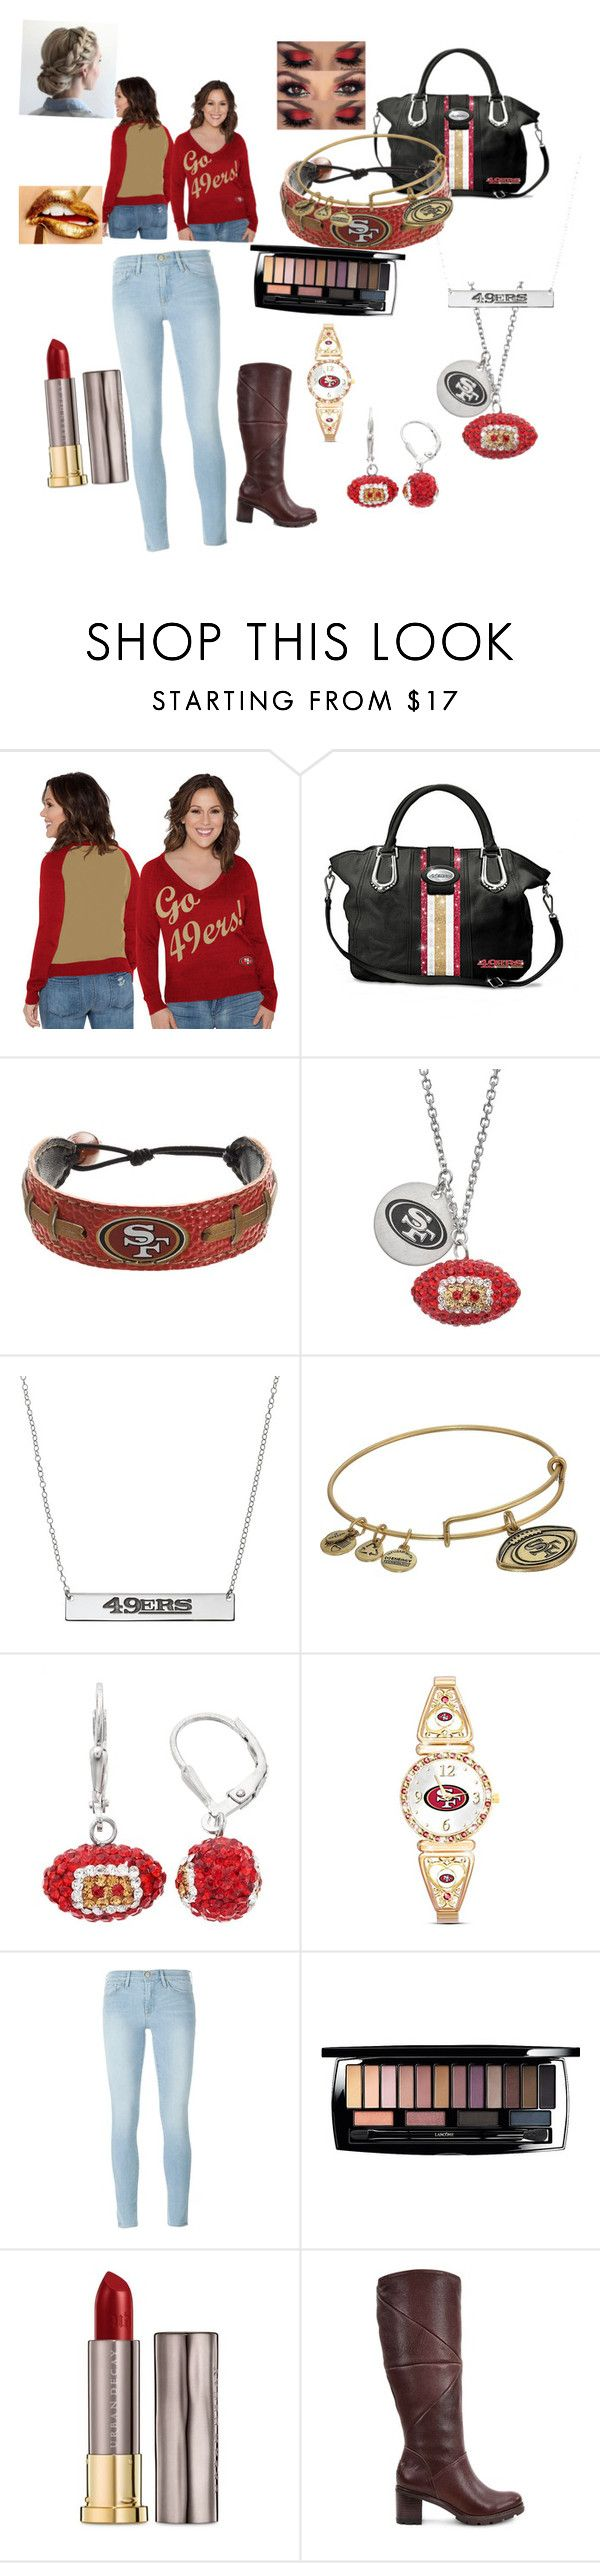 """Team Pride🏈 #SanFransisco49ers"" by channerriley ❤ liked on Polyvore featuring Touch by Alyssa Milano, The Bradford Exchange, GameWear, Alex and Ani, Frame Denim, Lancôme, Urban Decay, UGG and plus size clothing"